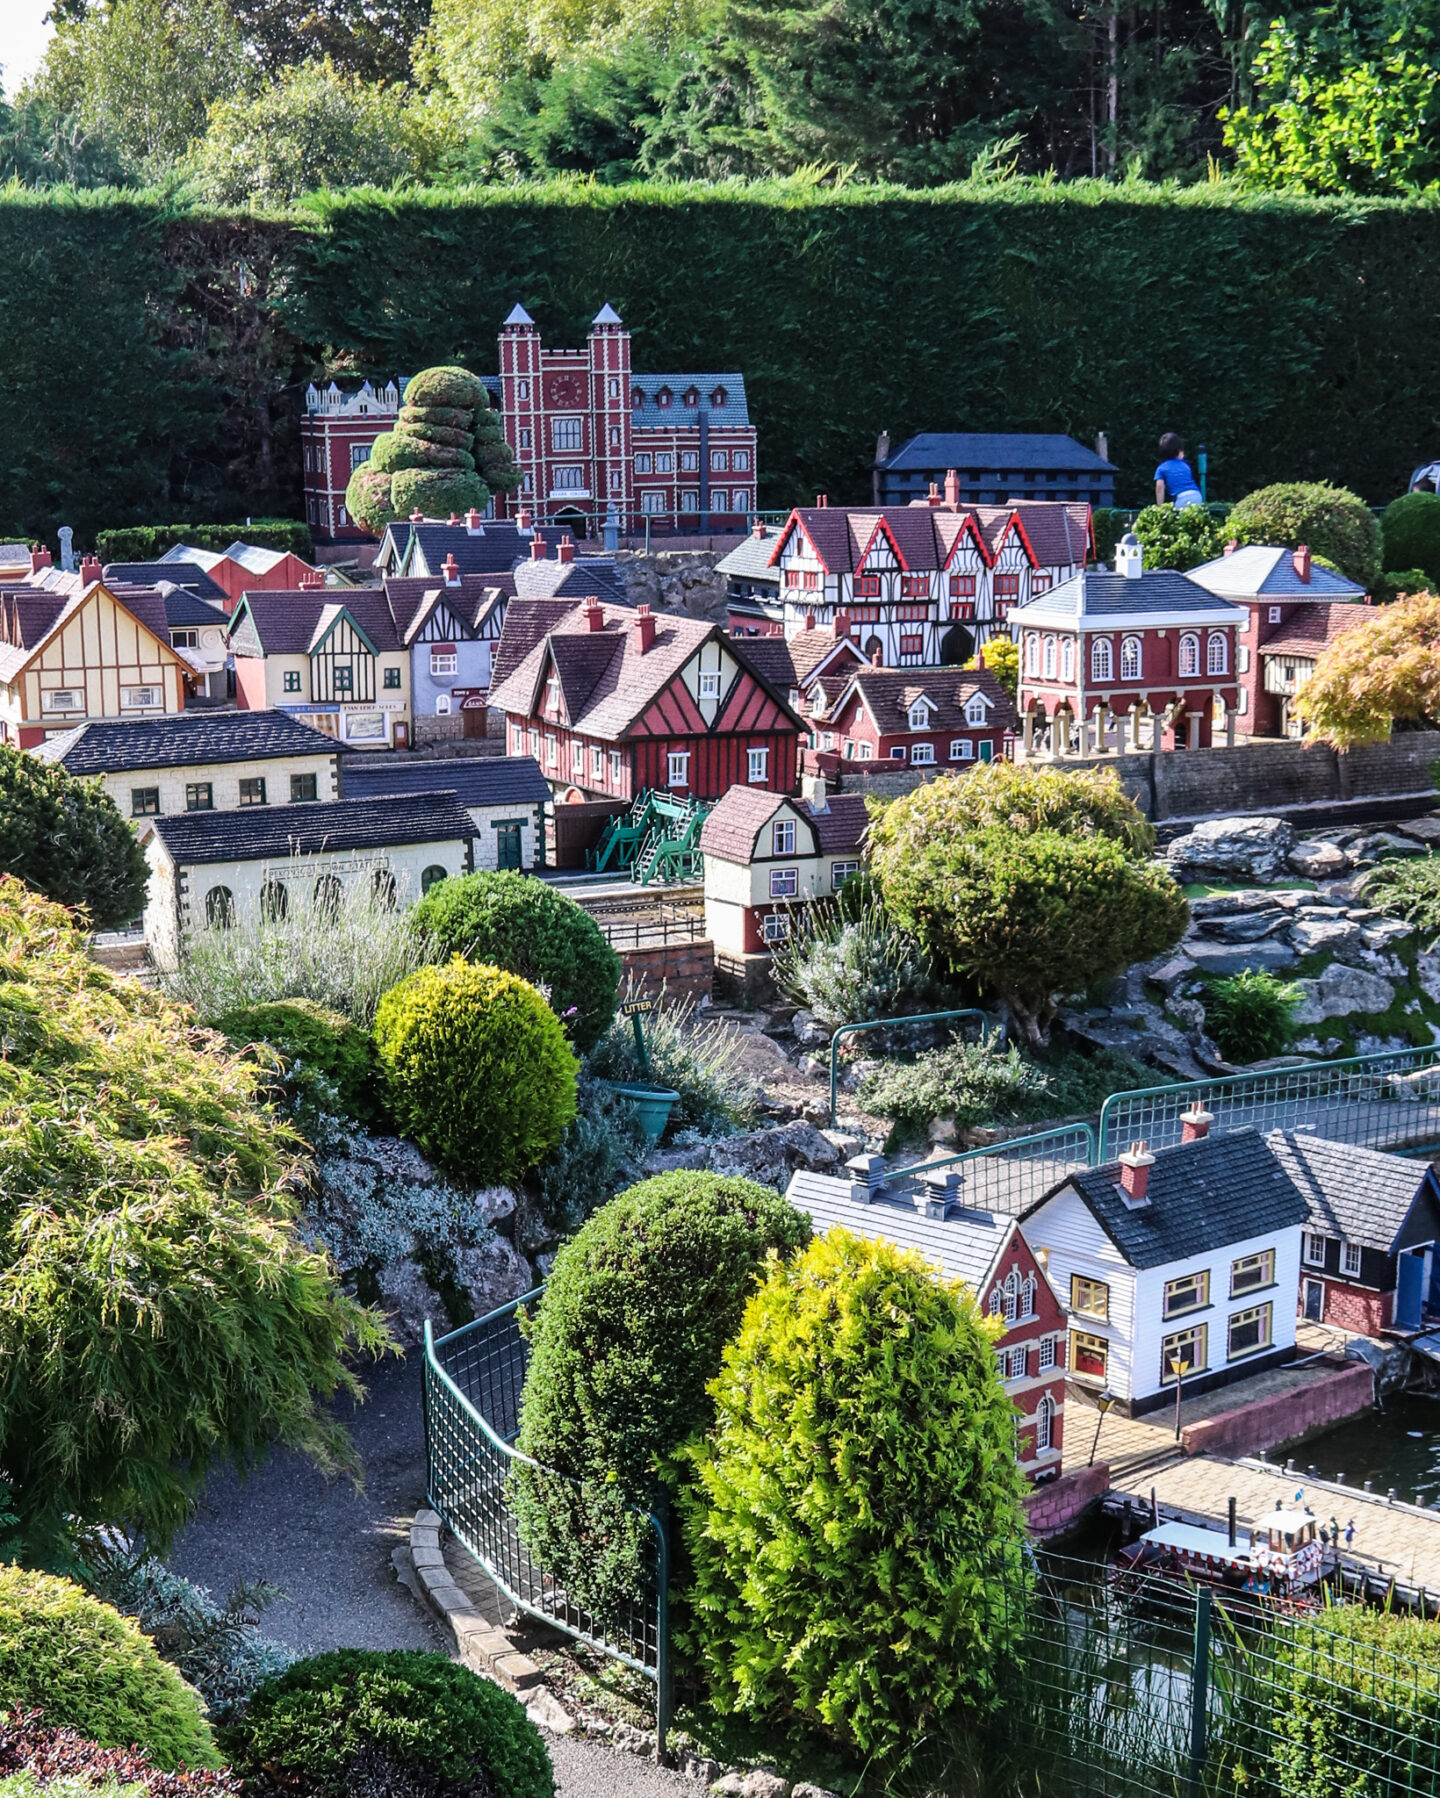 The oldest sections of the model village are close the entrance. Other parts are more recent additions to the park.